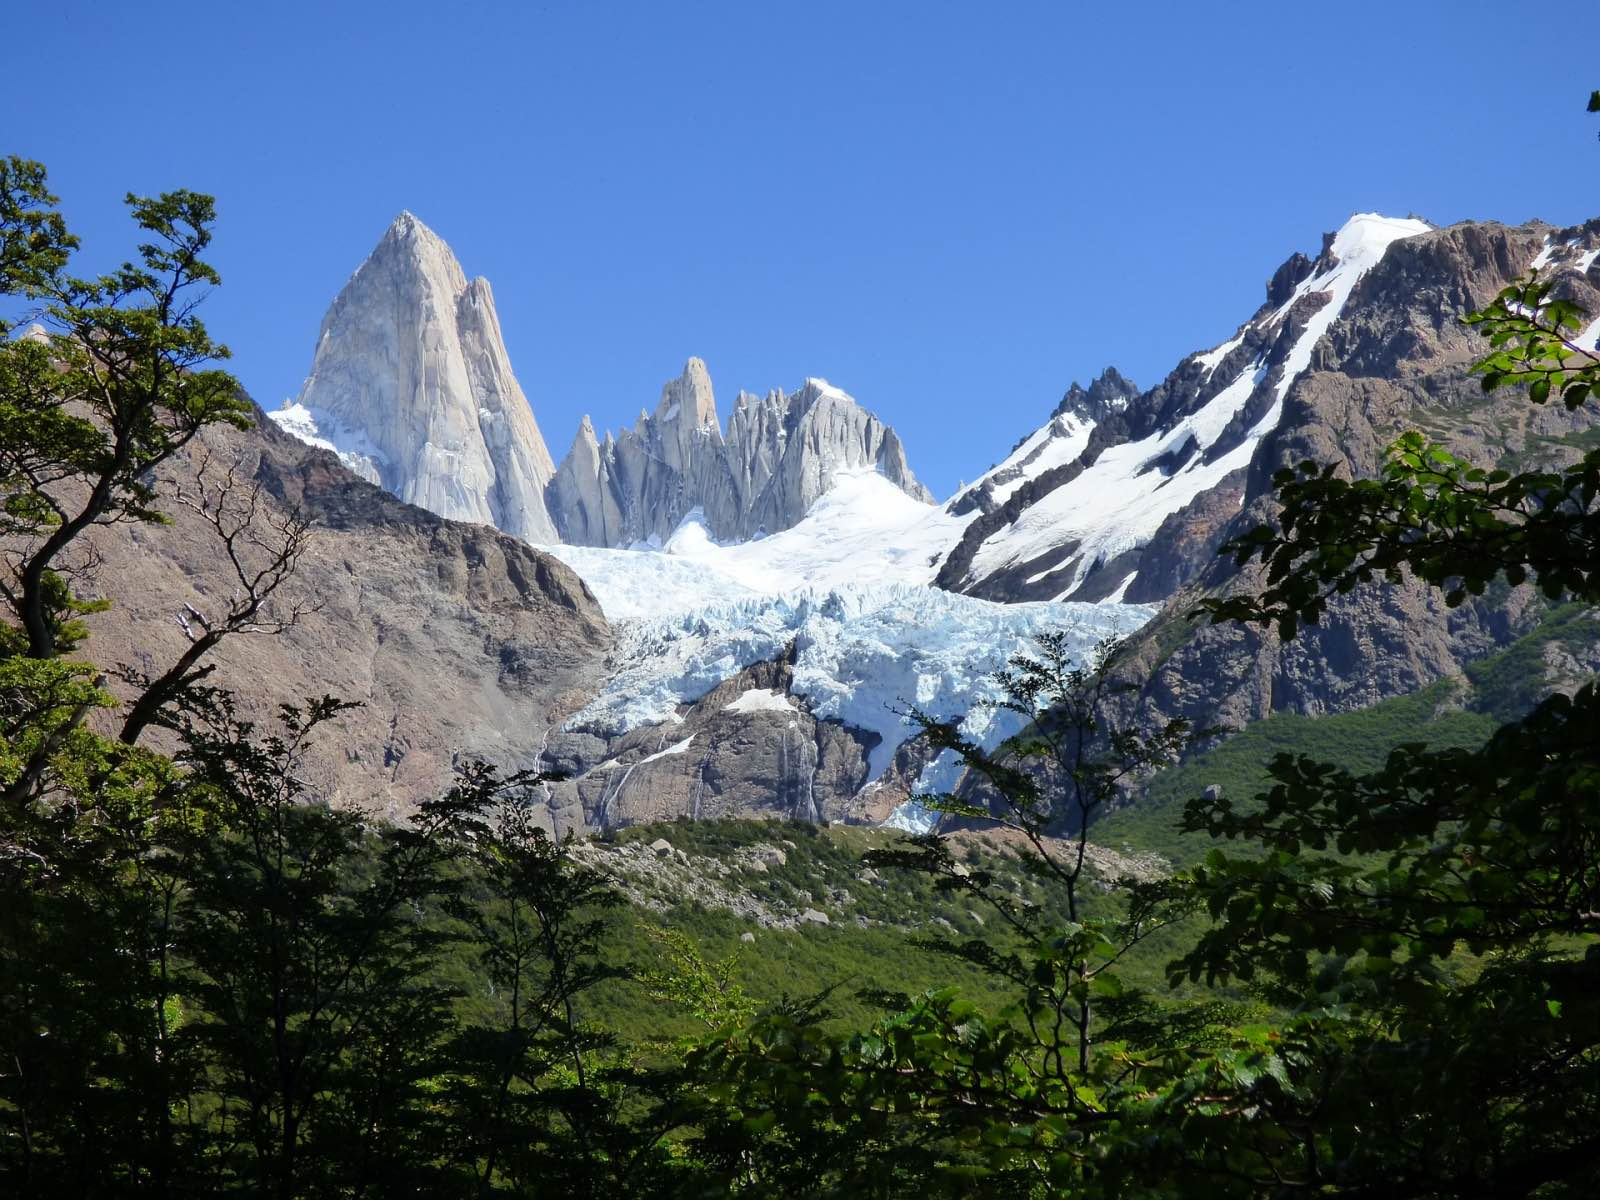 Hiking to the base of Cerro Fitz Roy, an icon of Patagonia Argentina.